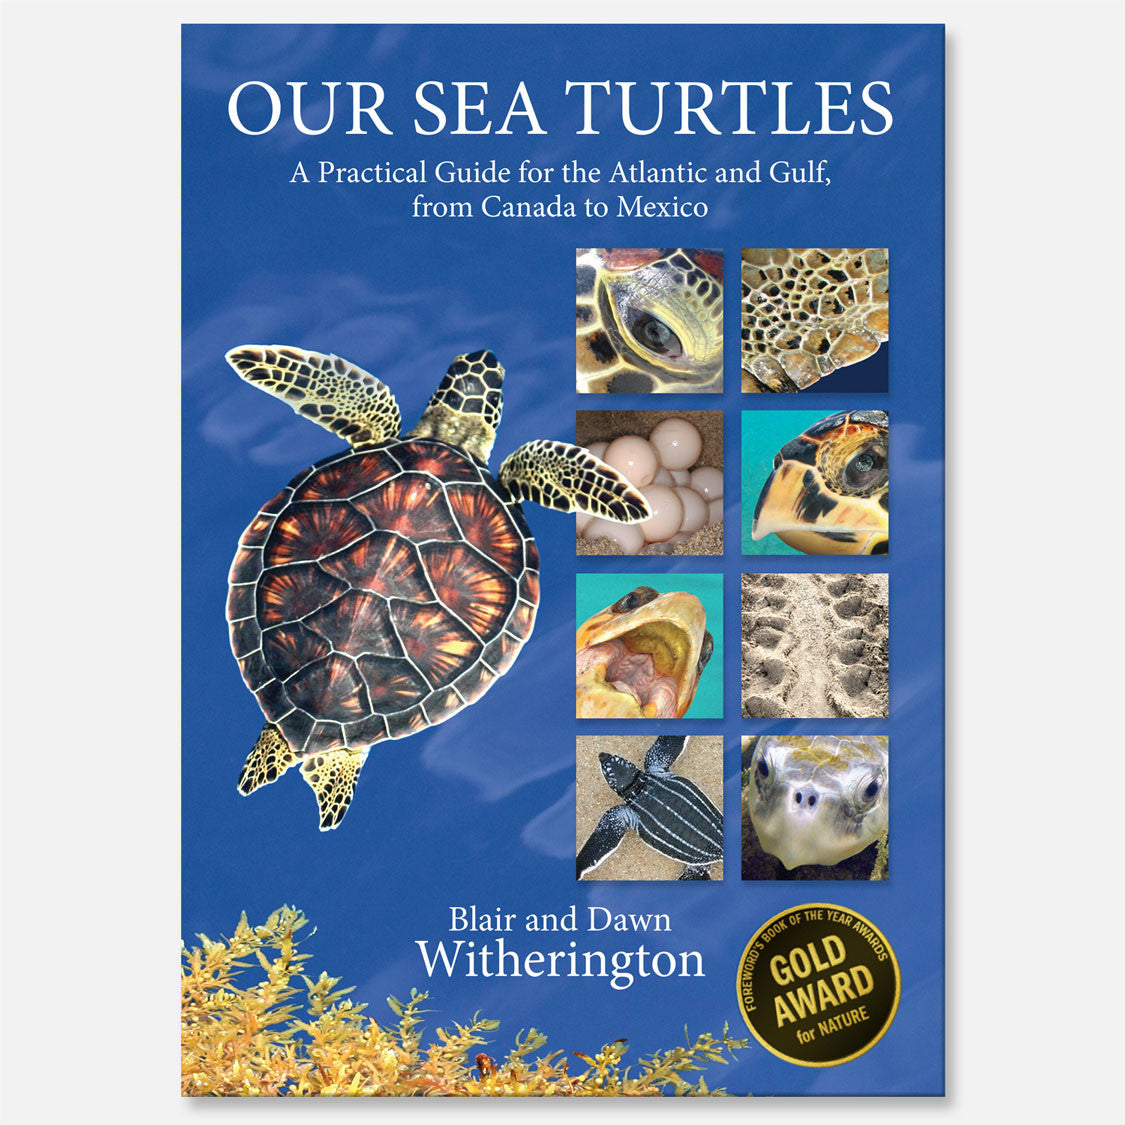 Our Sea Turtles by Blair and Dawn Witherington